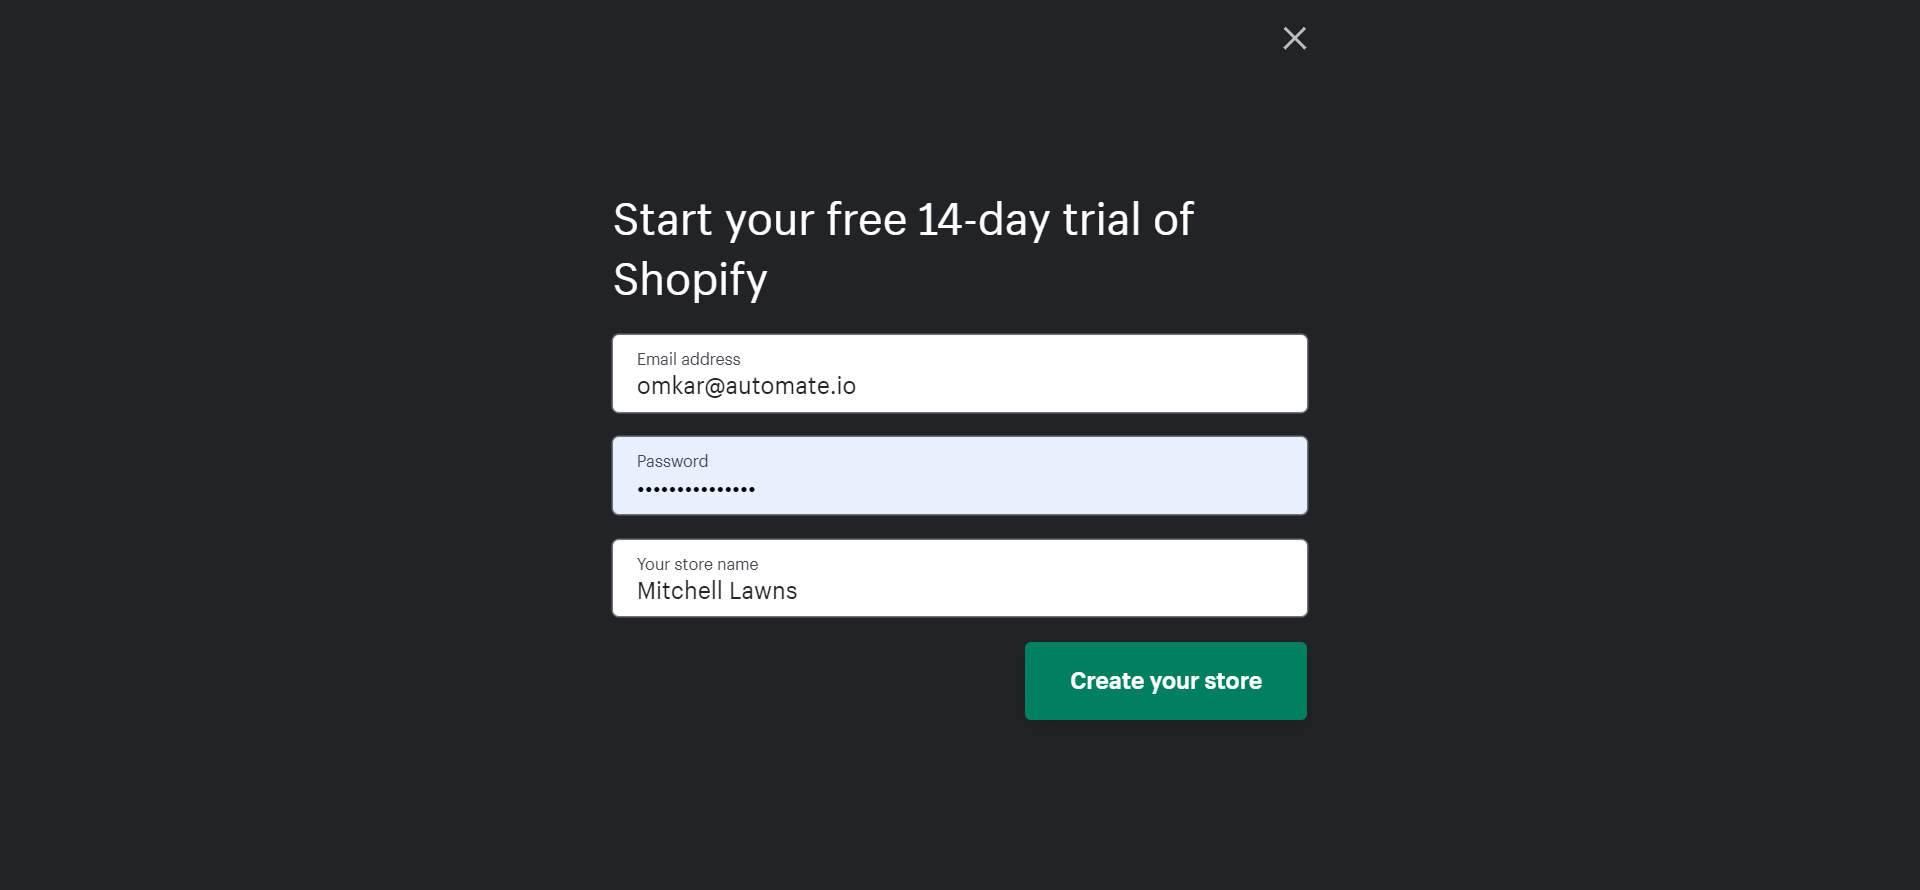 Sign up on Shopify